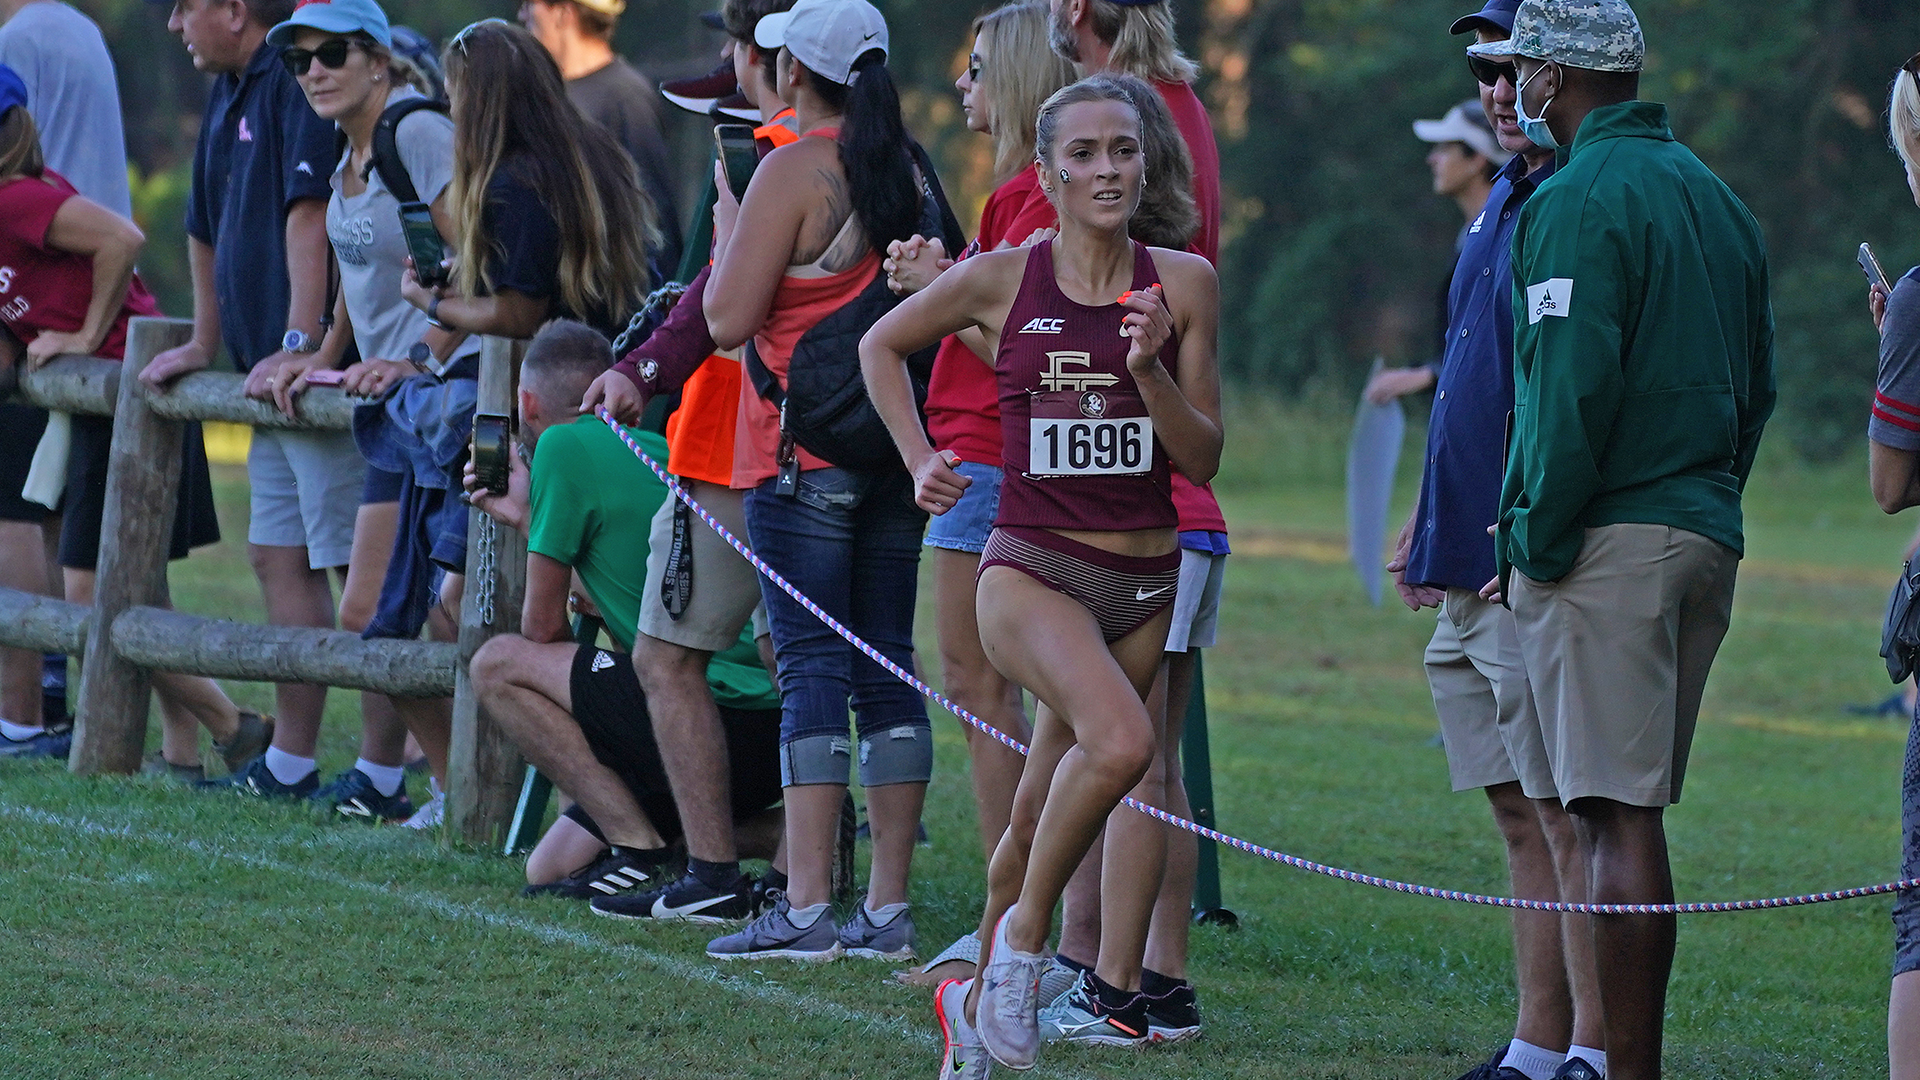 Noles Have Career Day at Pre-Nationals